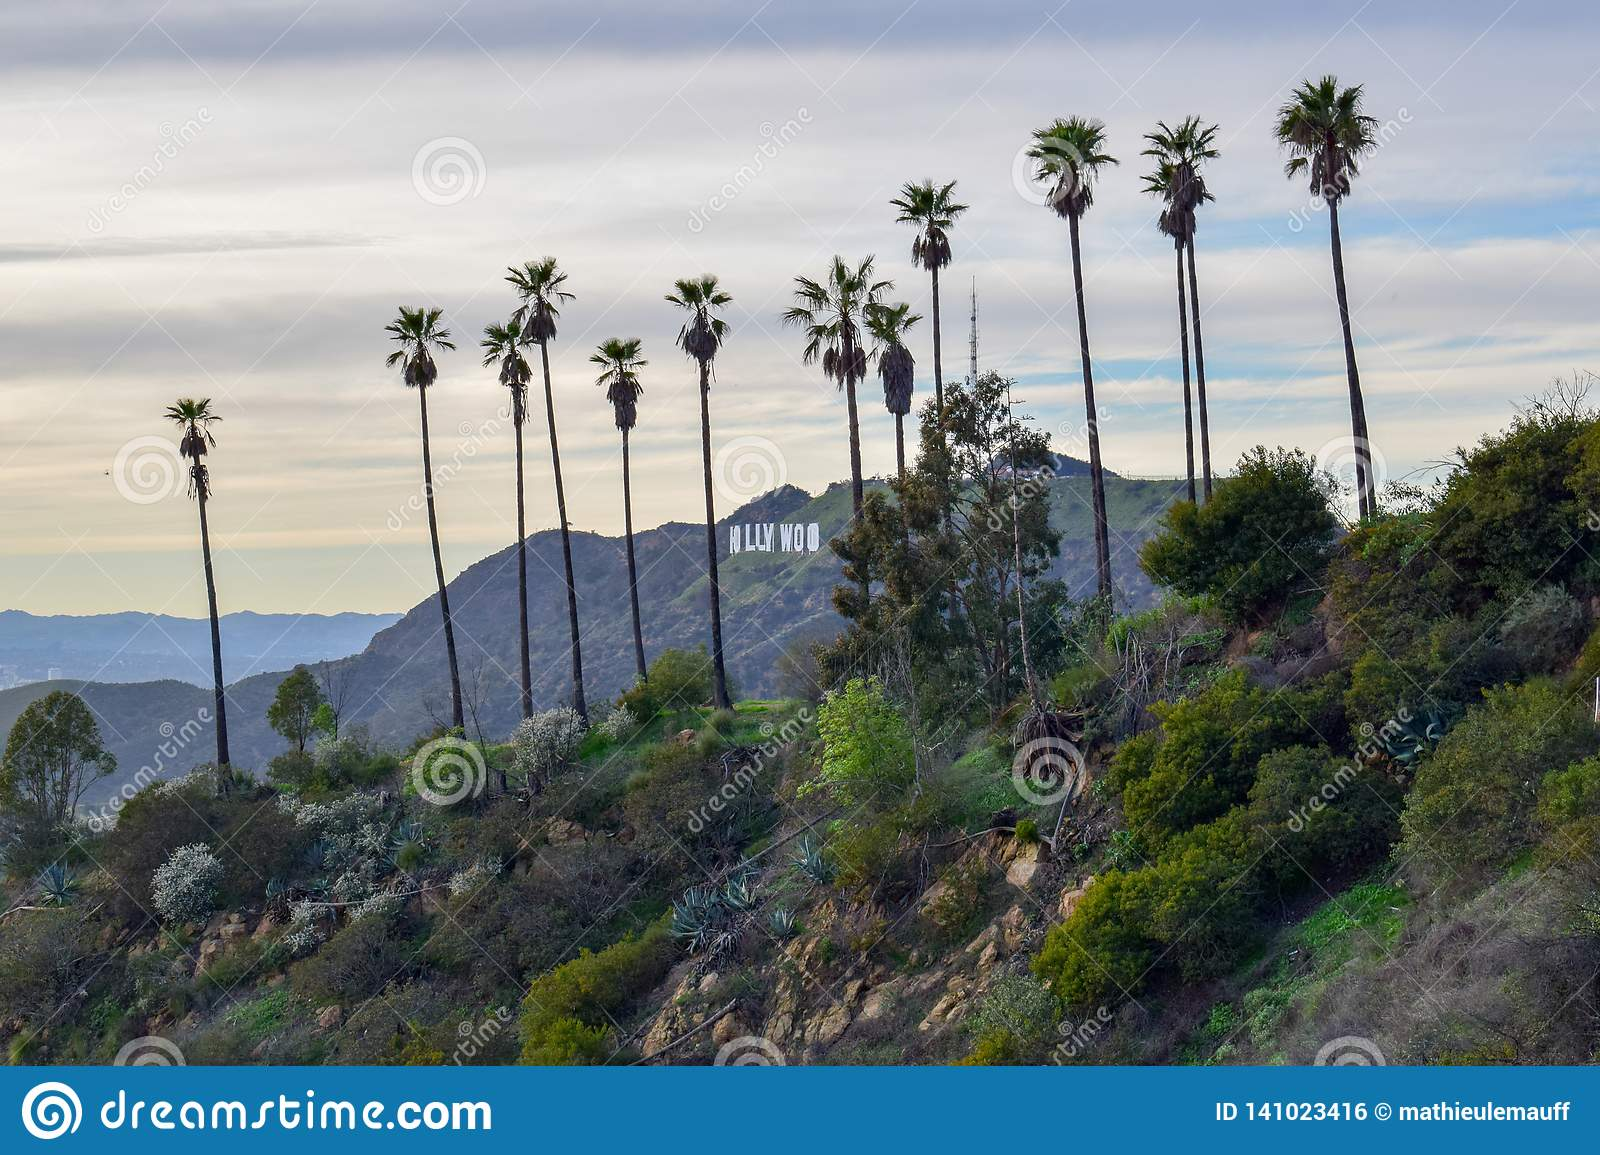 Hollywood Sign surrounded with Palm Trees on Mount Hollywood at Sunset